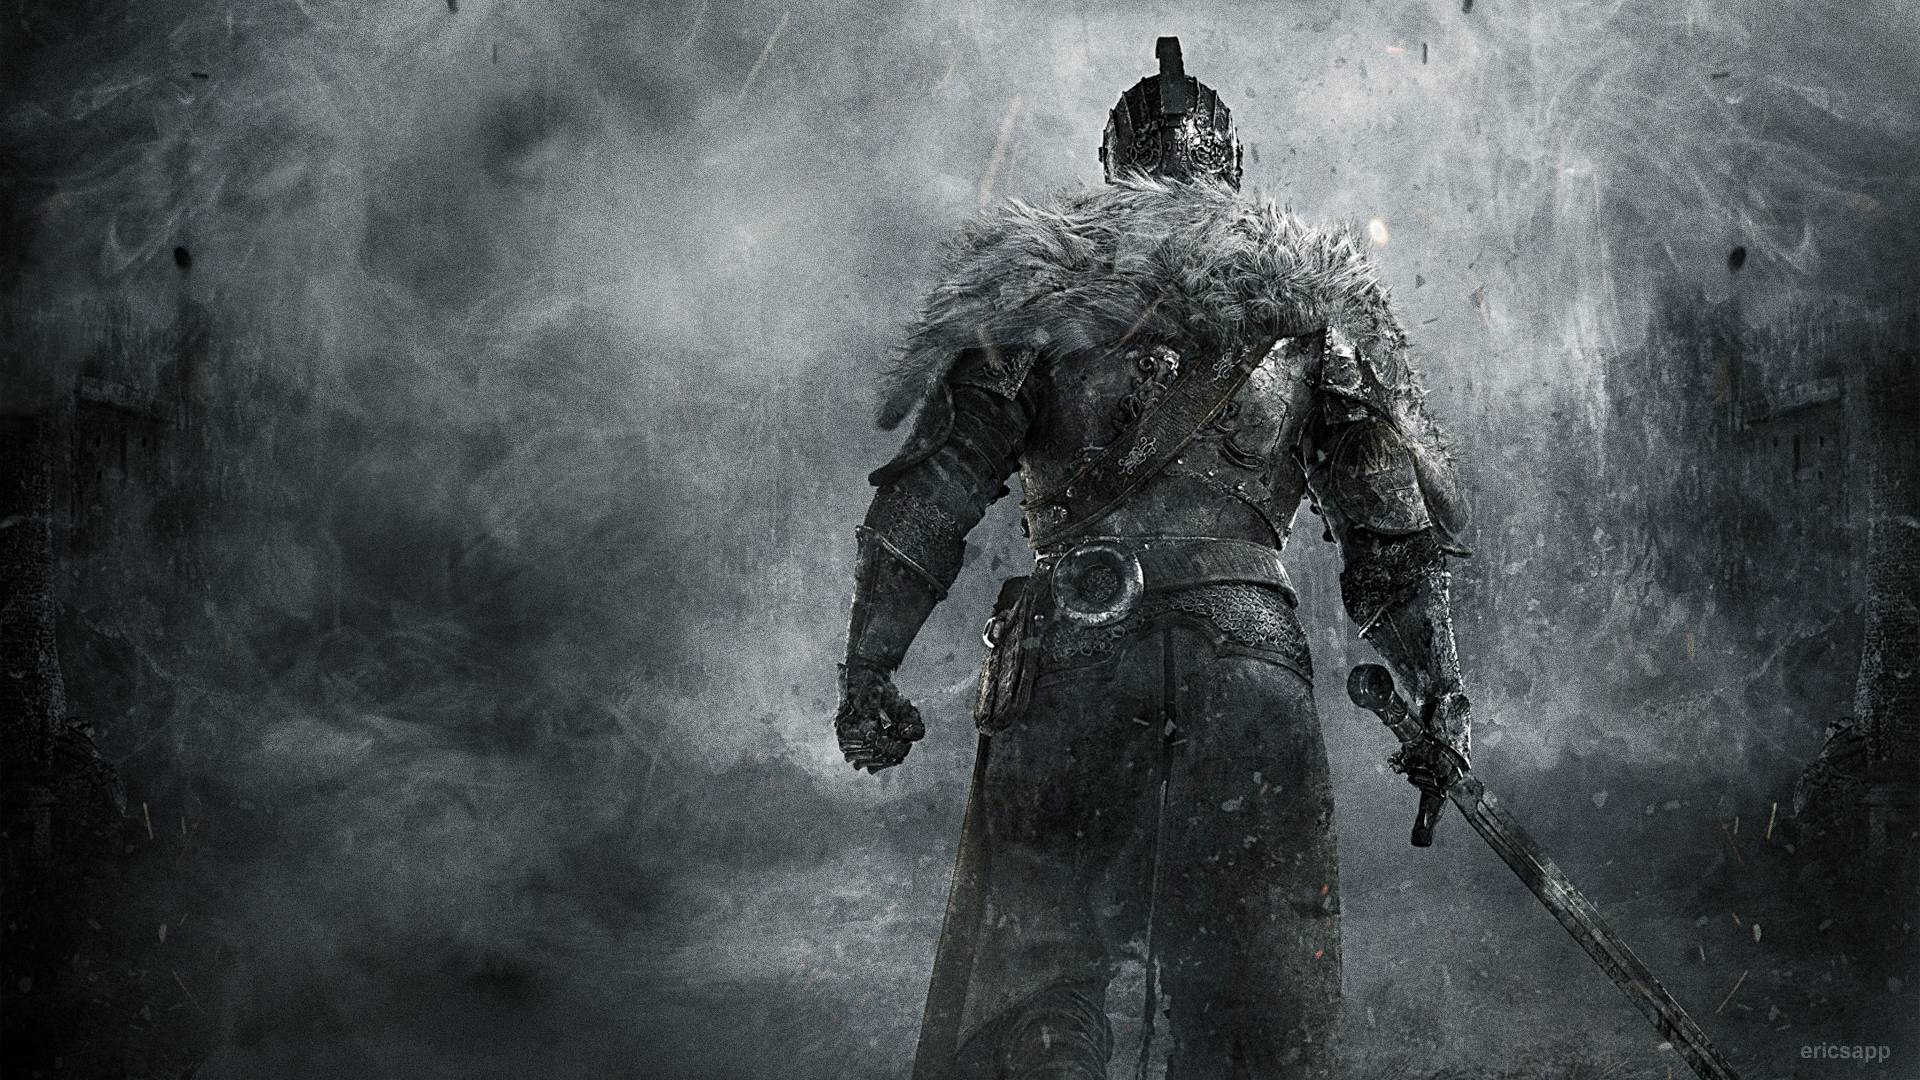 Dark Souls 2 Wallpaper Group with 68 items